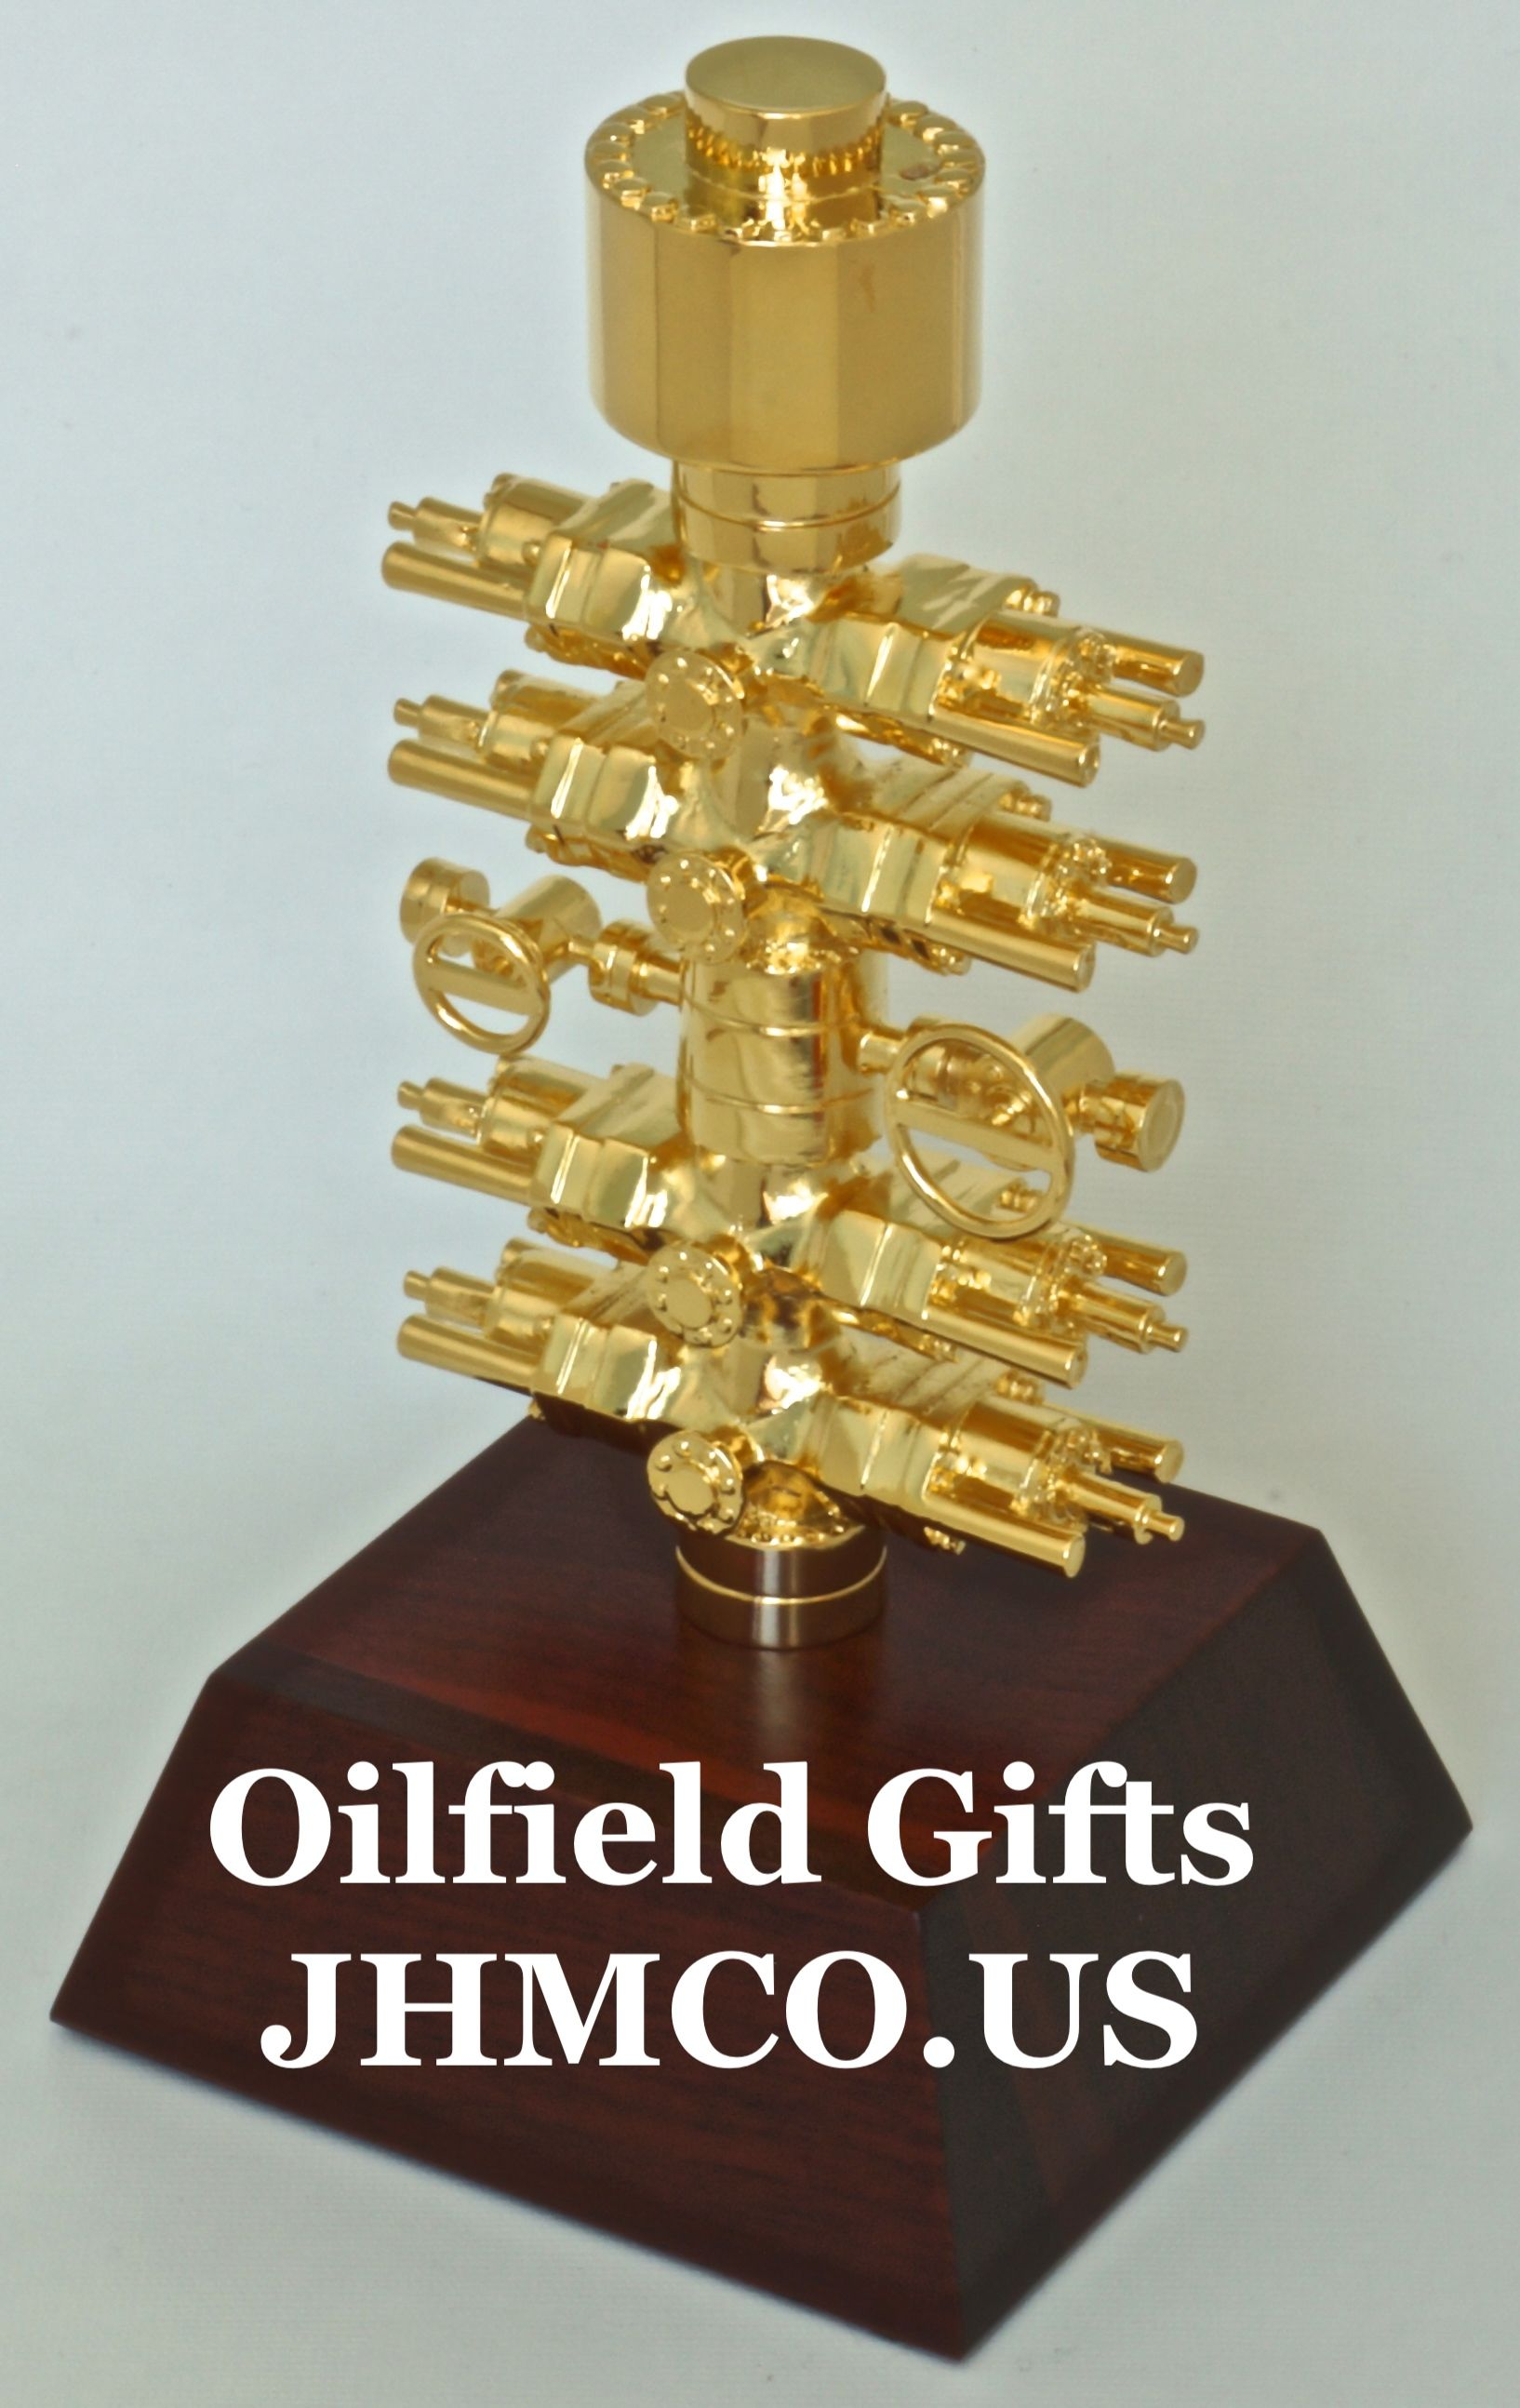 Texas Christmas tree wellhead model 163 (With images